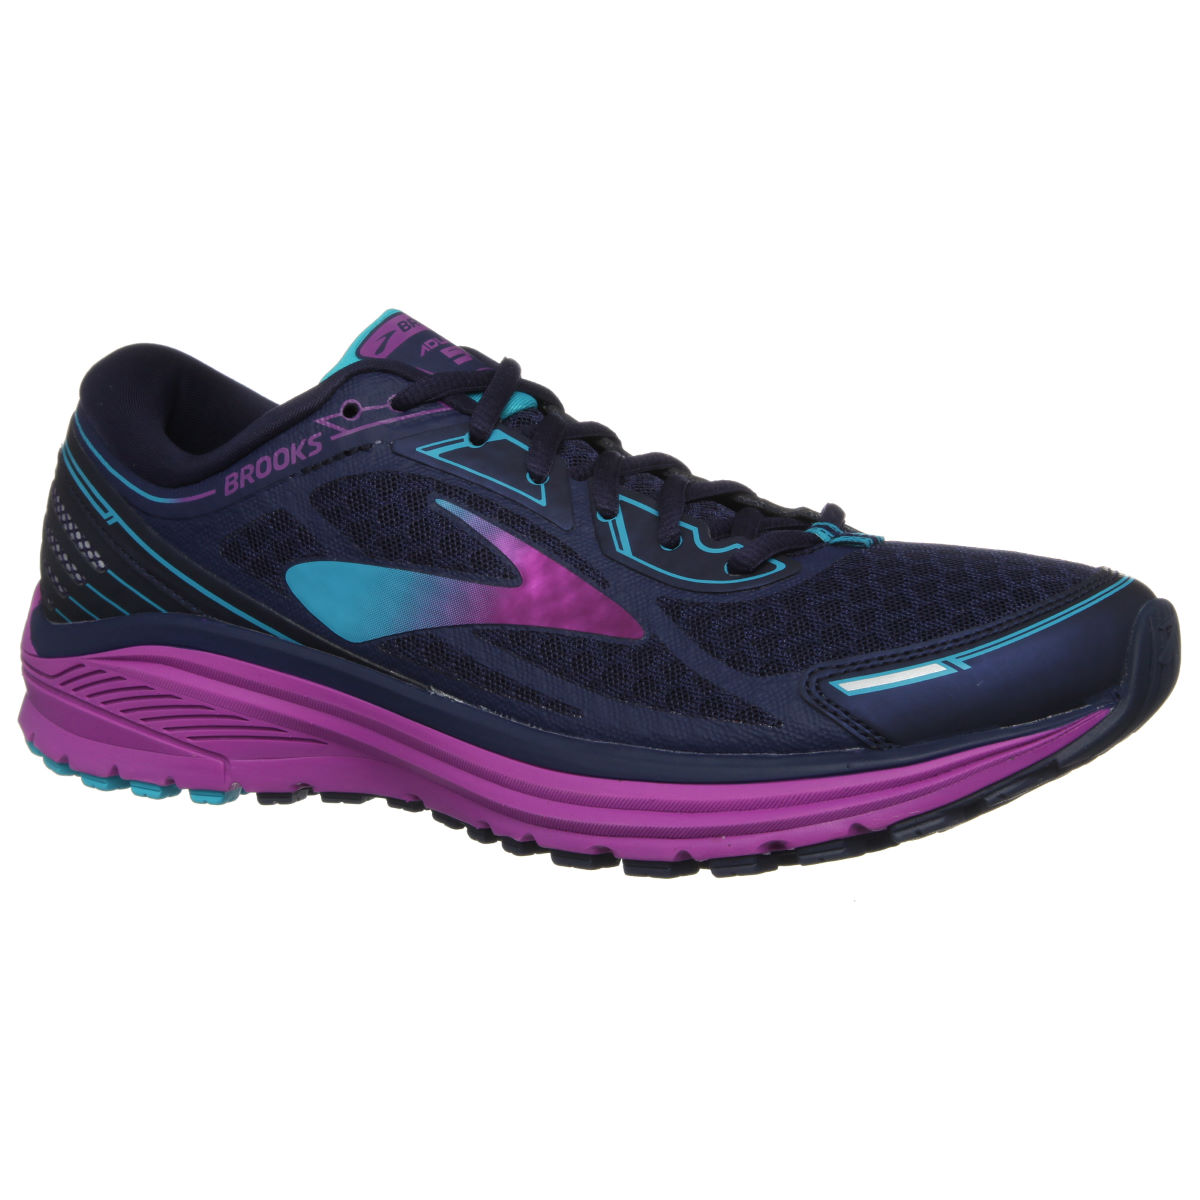 Brooks Women's Aduro 5 Shoes - Zapatillas acolchadas